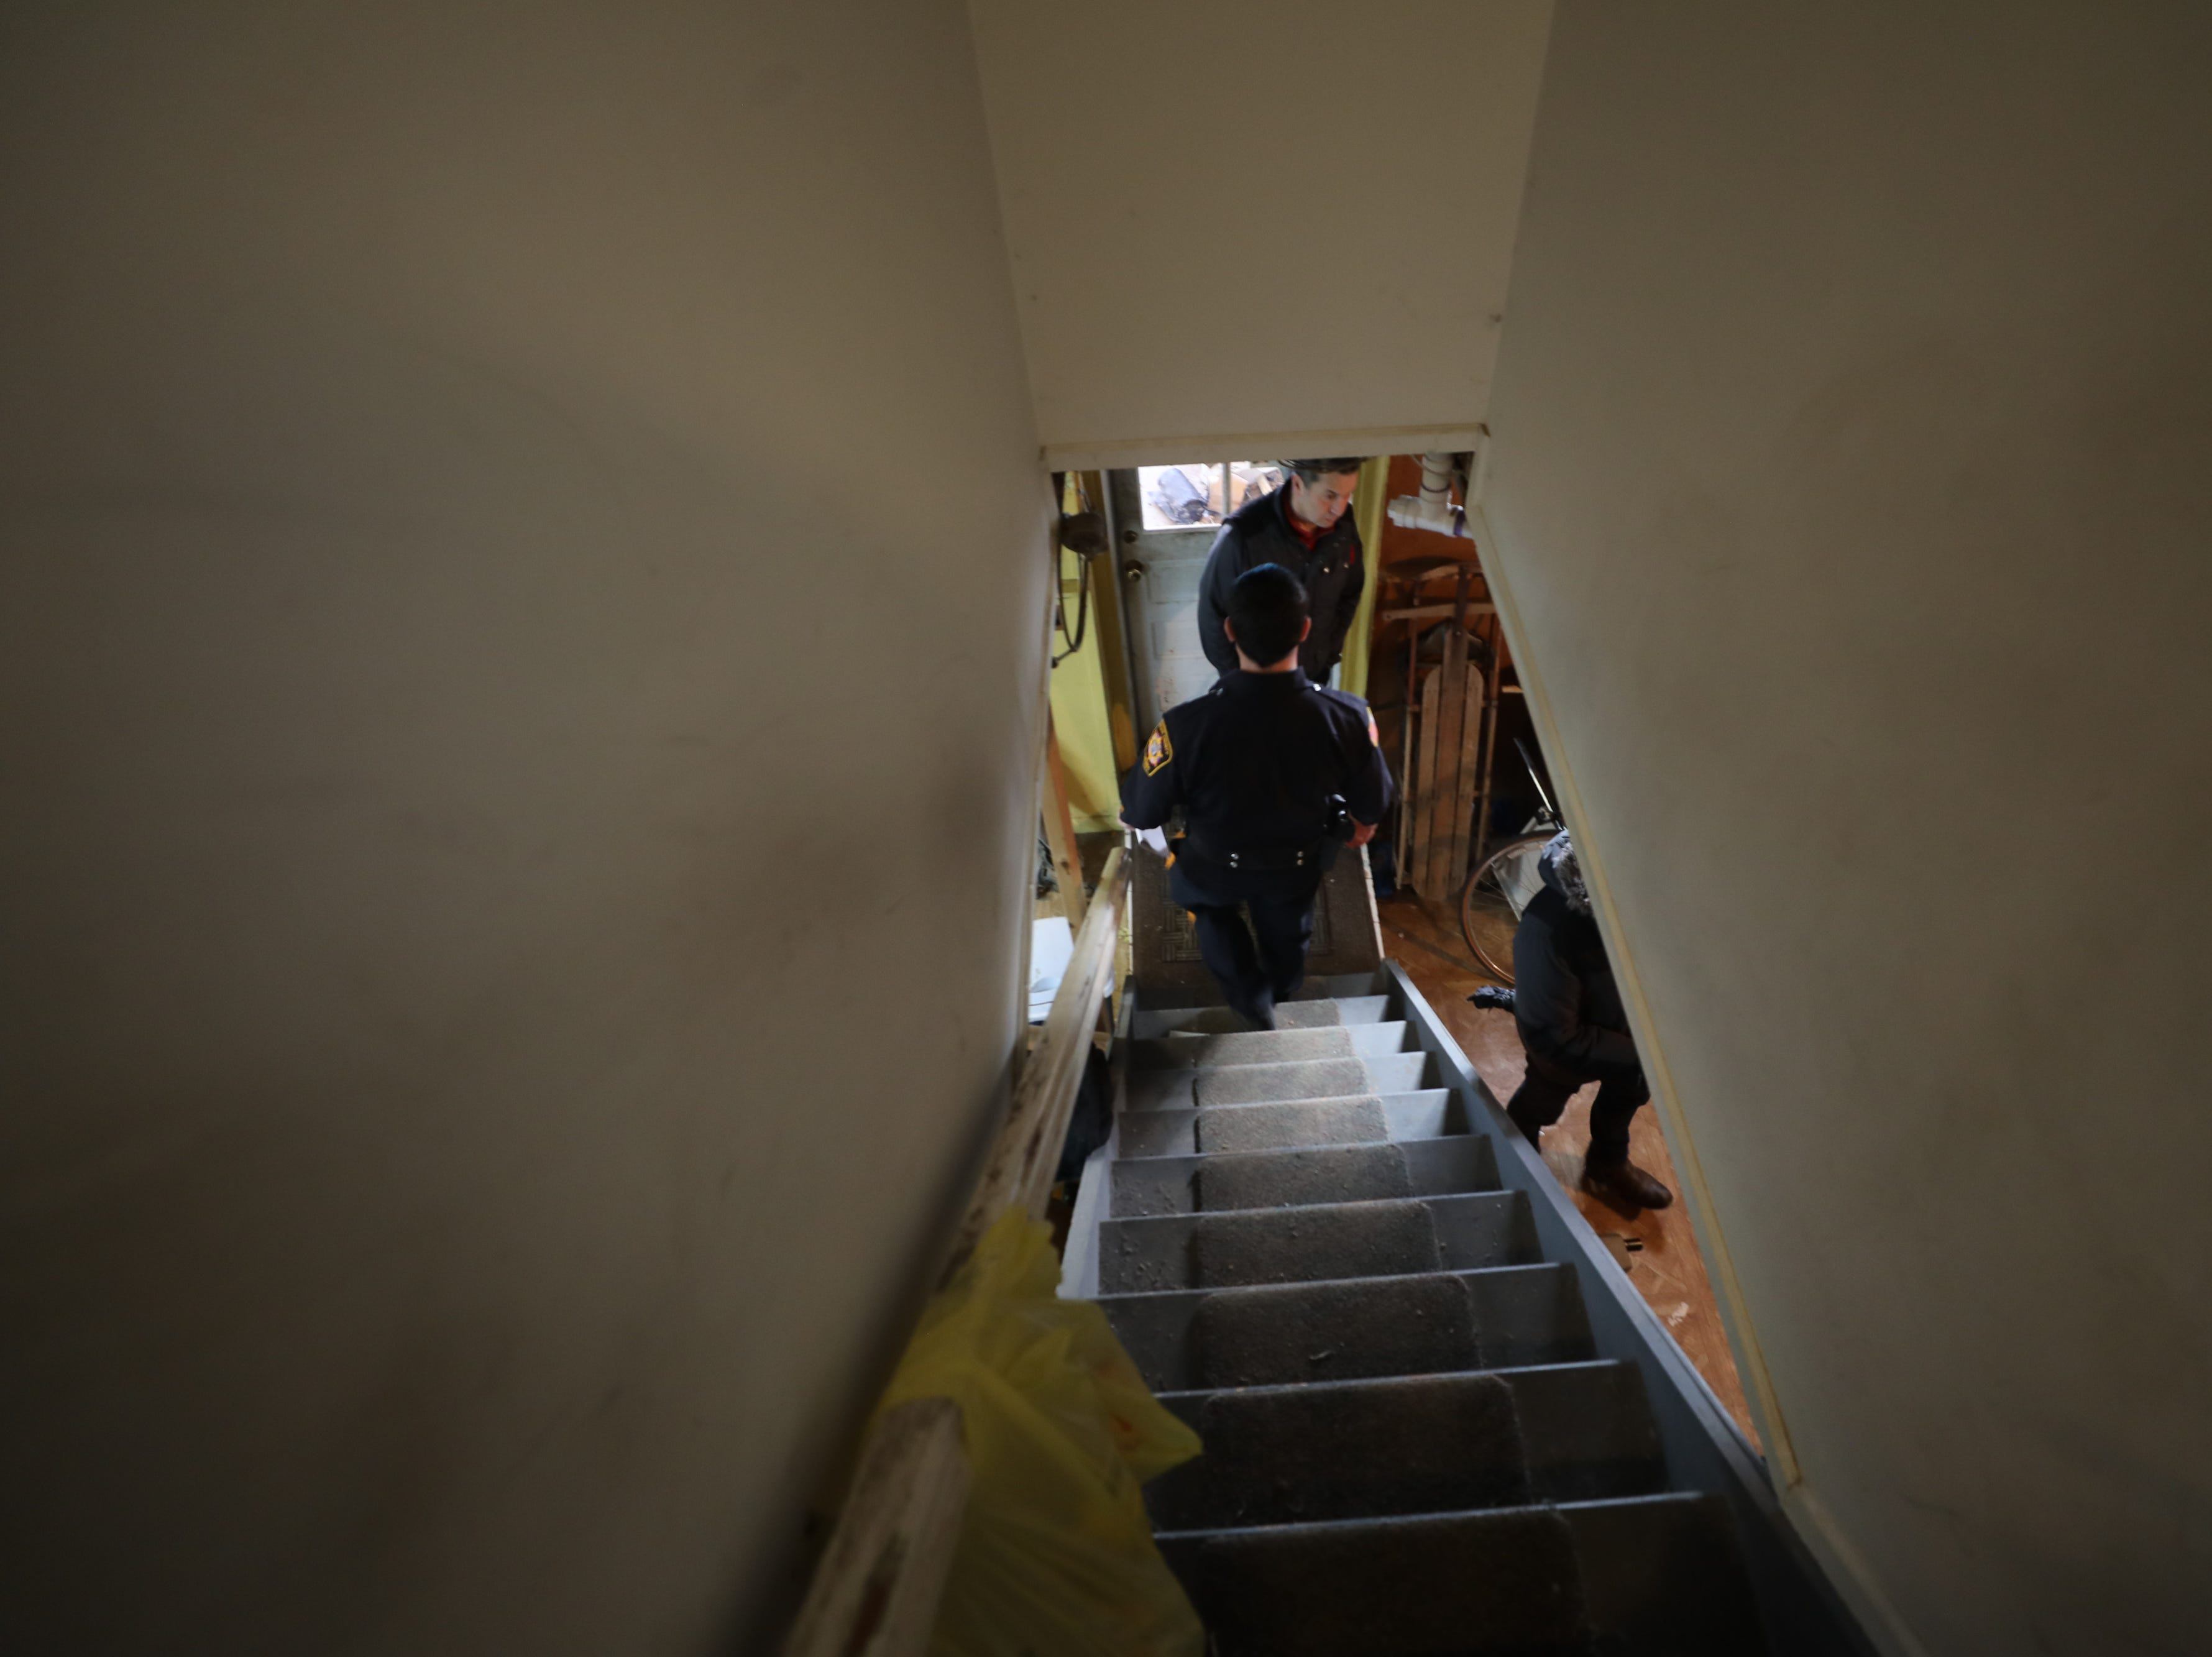 Sheriff's Officer Nick D'Agostini walks down the steps into the basement of the house occupied by Charles D'Alessandro and his sister. They are being evicted from the home on March 19, 2019, after failing to pay the mortgage for the past 10 years.